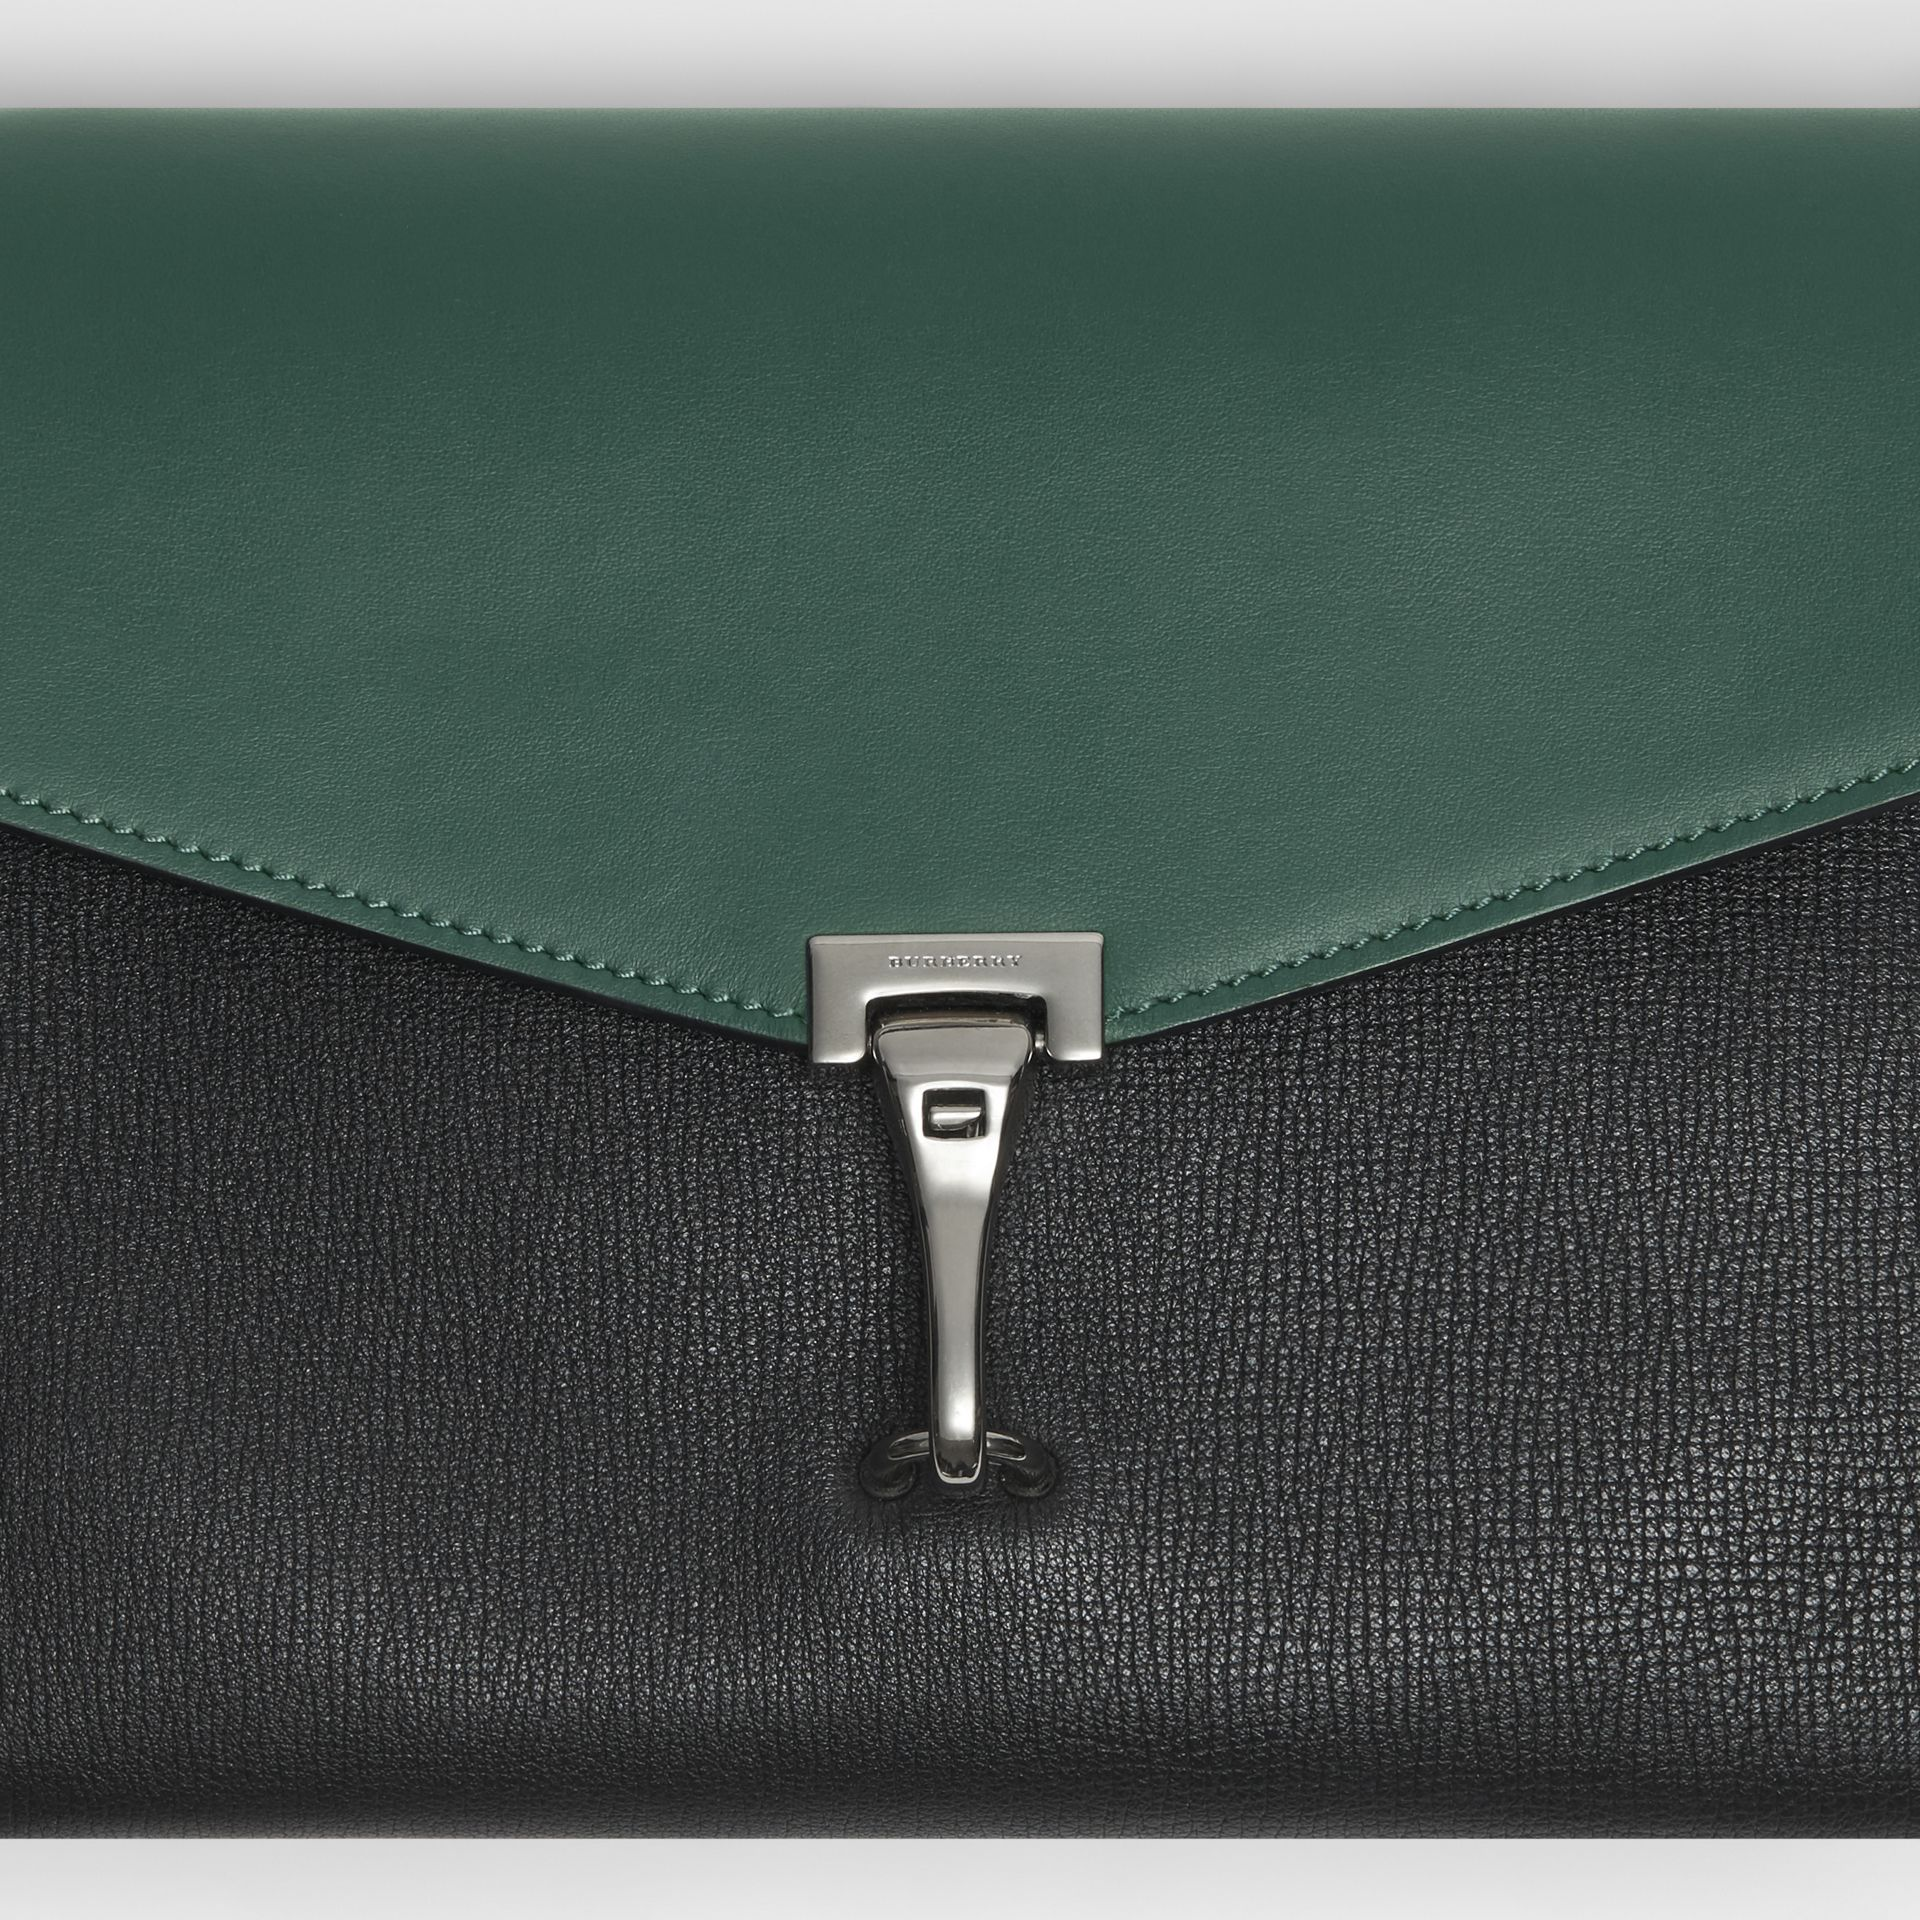 Two-tone Leather Crossbody Bag in Black/sea Green - Women | Burberry - gallery image 1